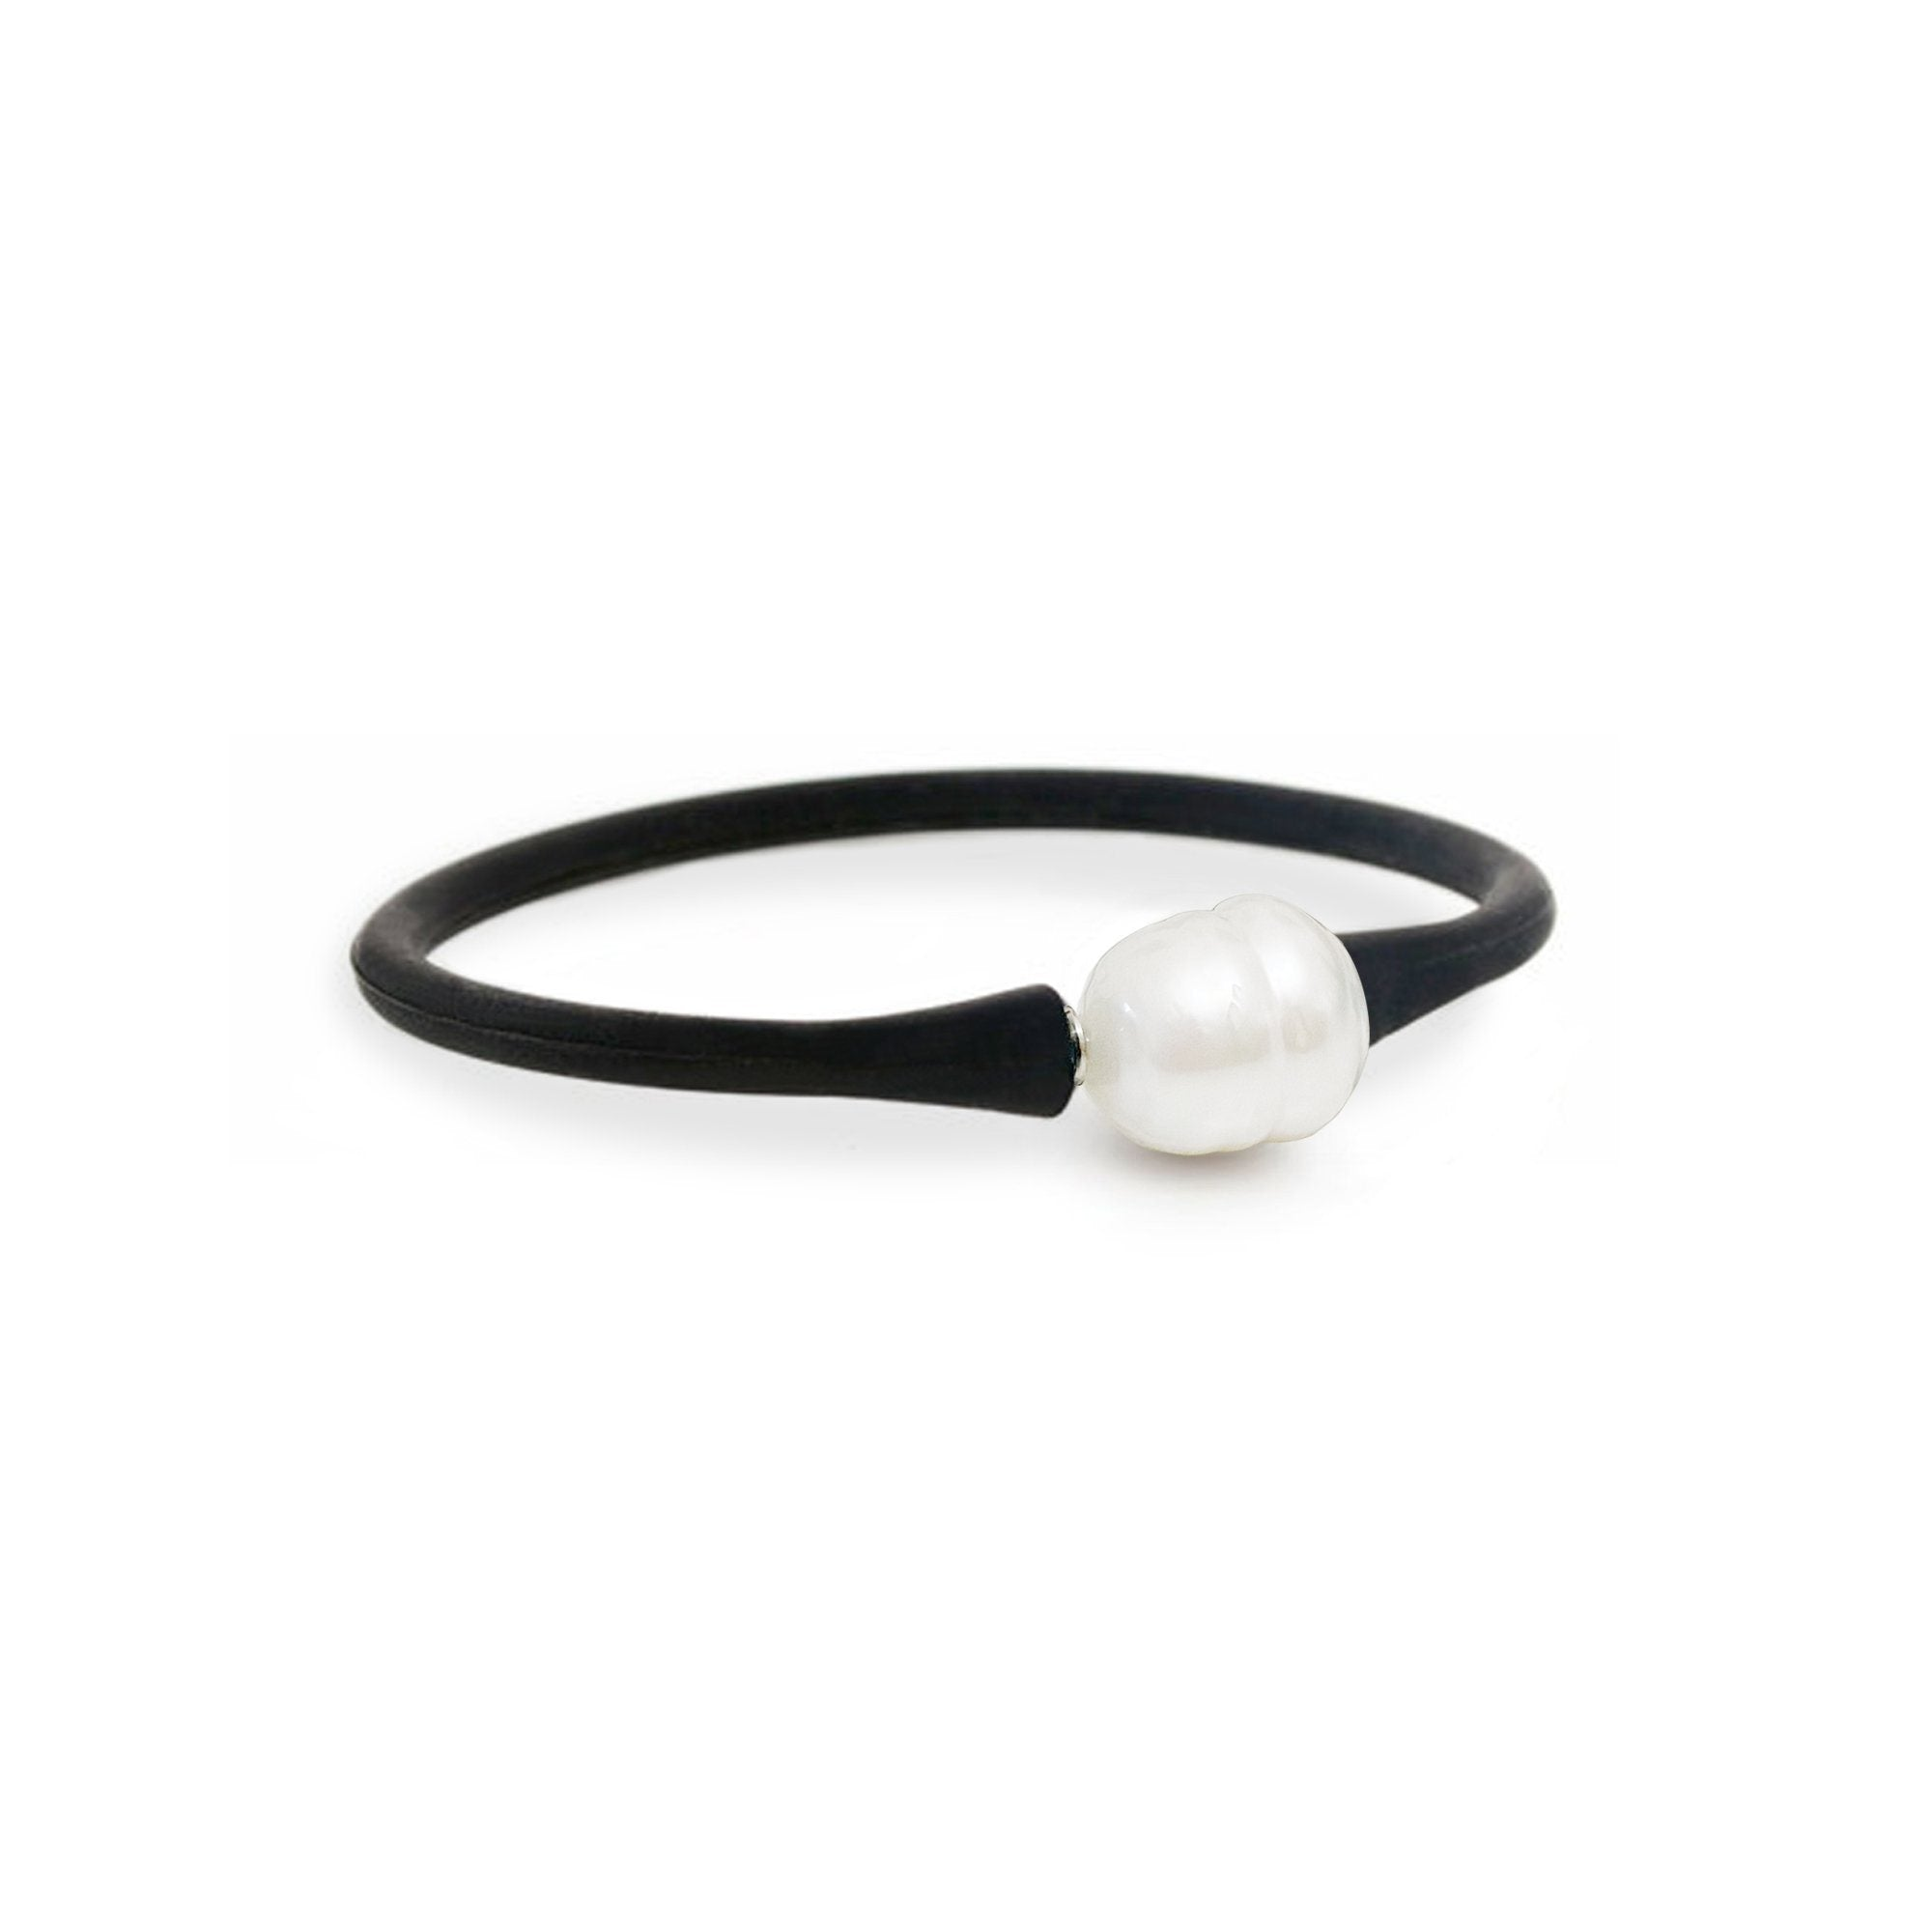 Neoprene Pearl Bracelet - 12mm Large Egg Shape